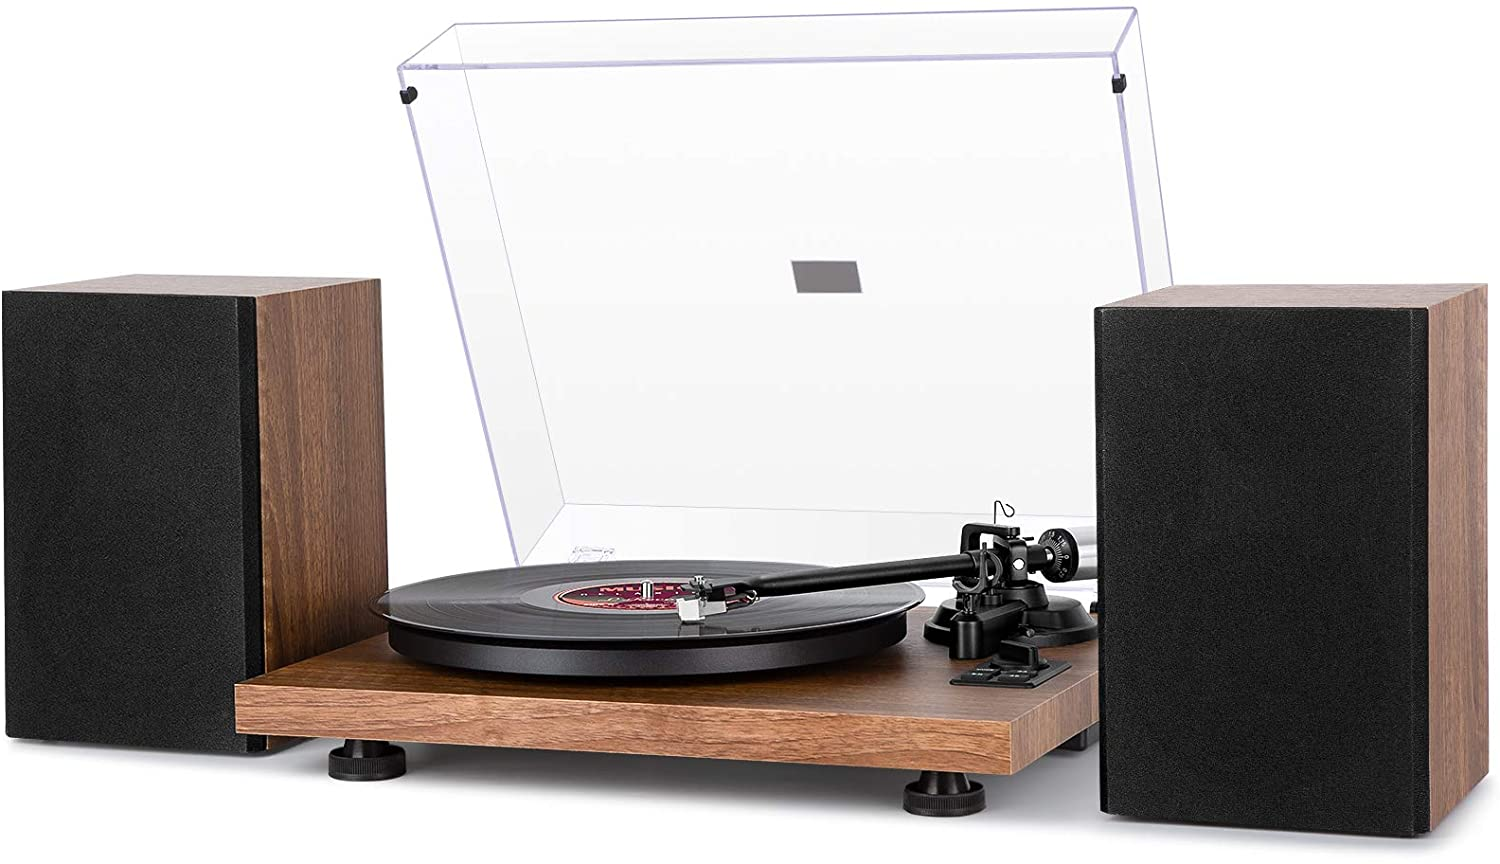 1byone Wireless Turntable HiFi System With Speakers